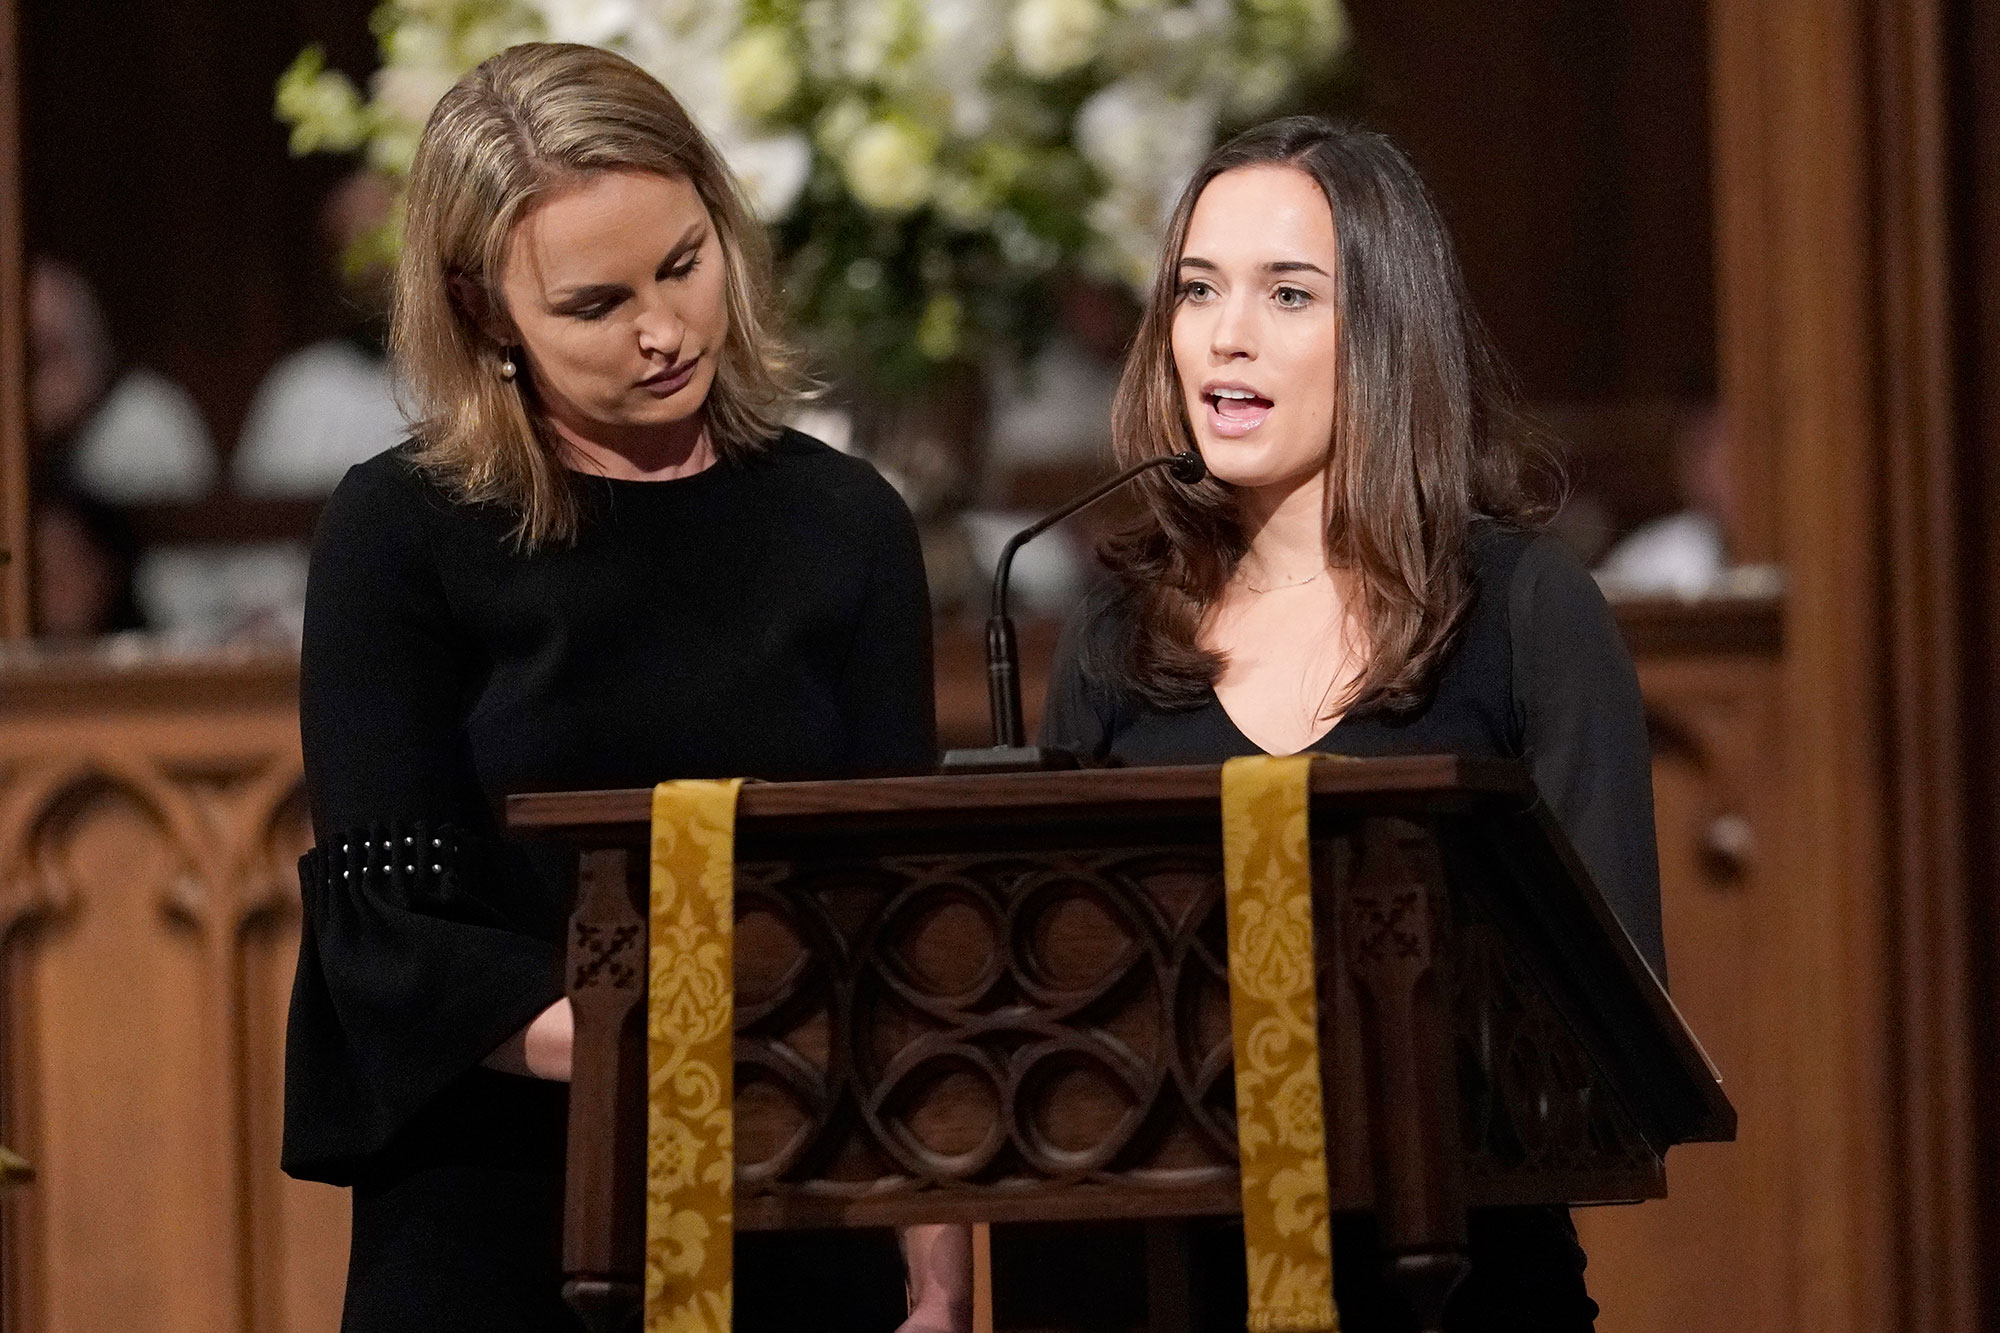 <div class='meta'><div class='origin-logo' data-origin='none'></div><span class='caption-text' data-credit='David J. Phillip, Pool/AP Photo'>Nancy Ellis LeBlond Sosa, left, and Georgia Grace Koch read scripture during a funeral service for former President George H.W. Bush at St. Martin's Episcopal Church Thursday.</span></div>